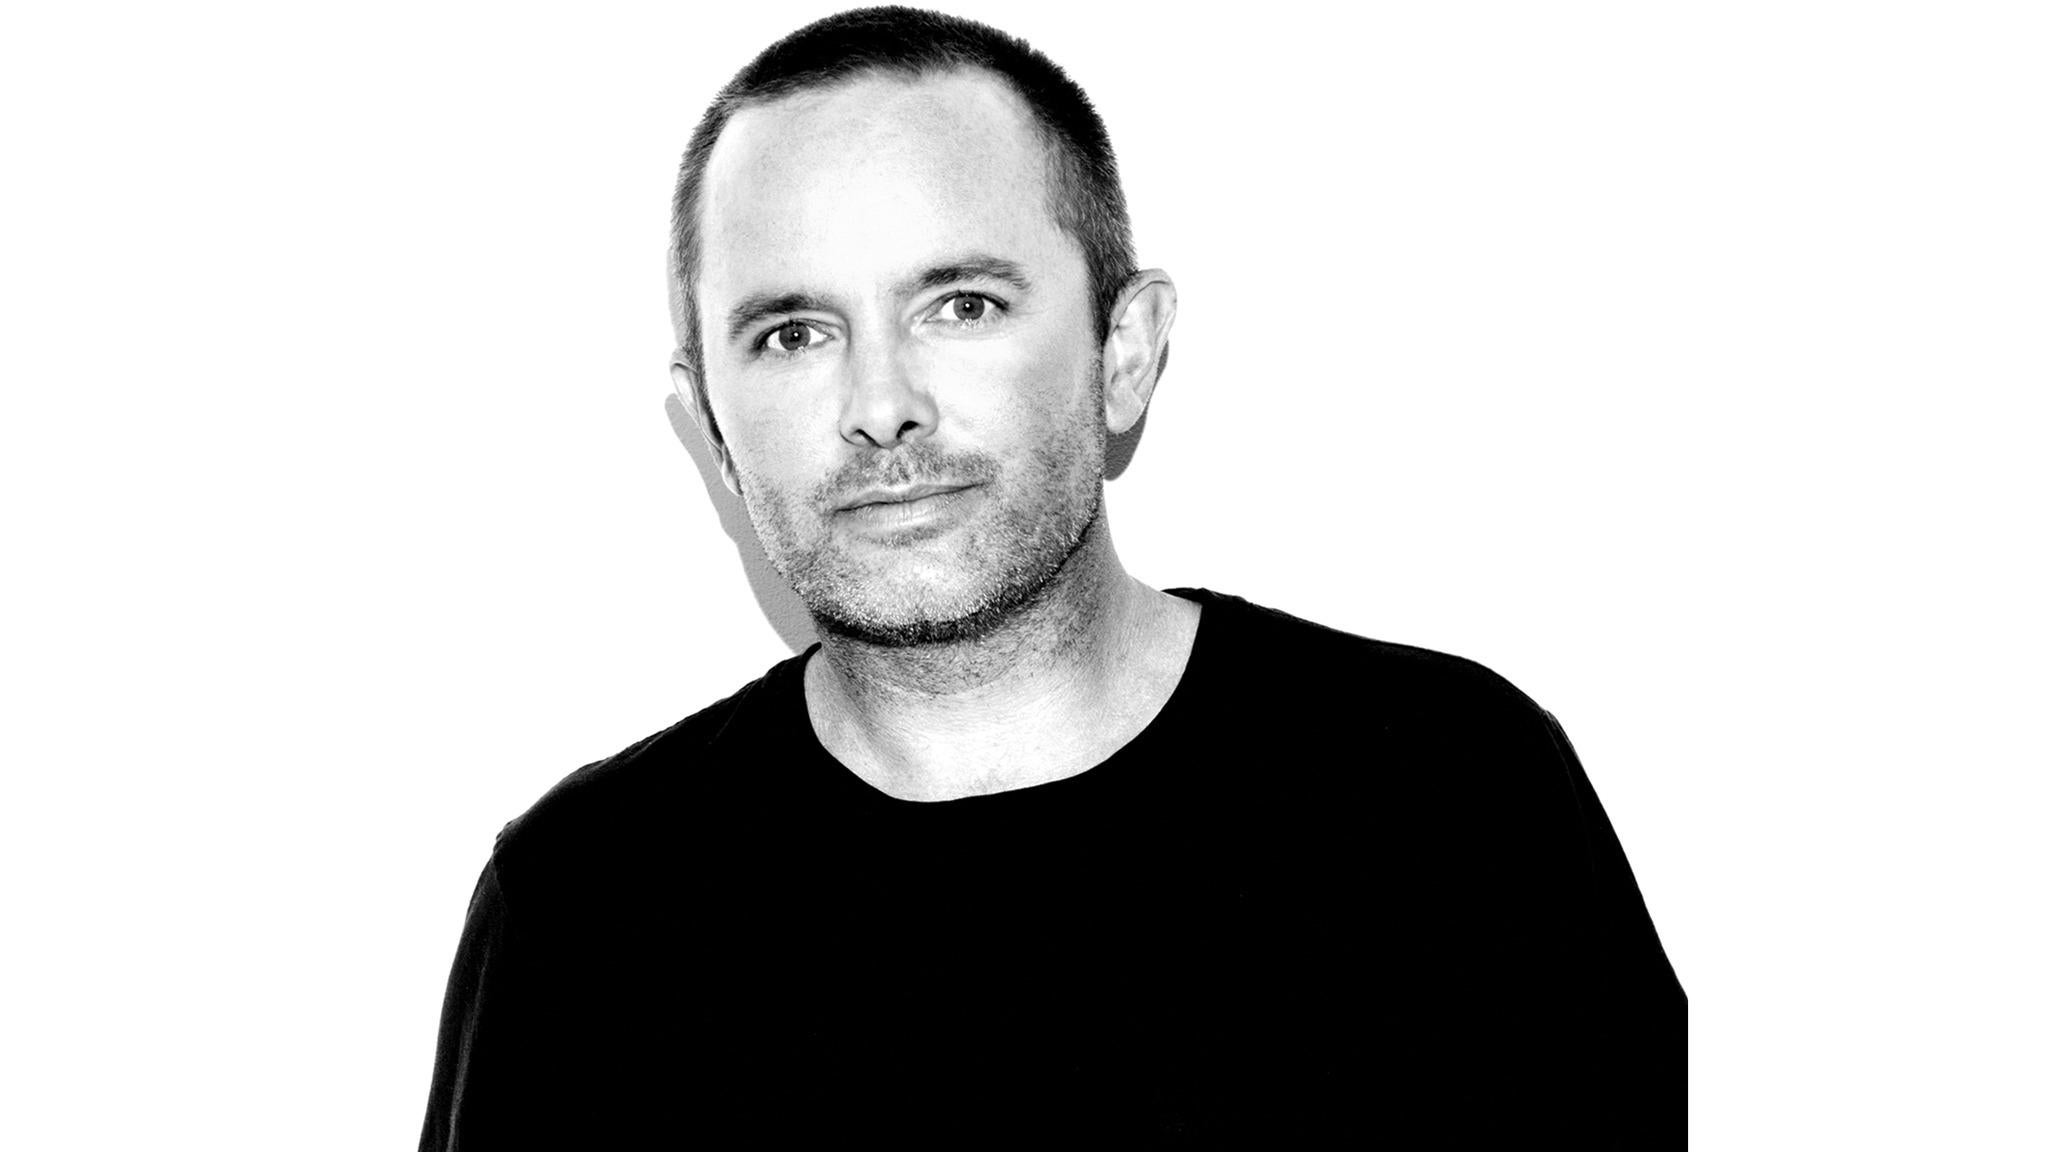 CHRIS TOMLIN presents Worship Night in America